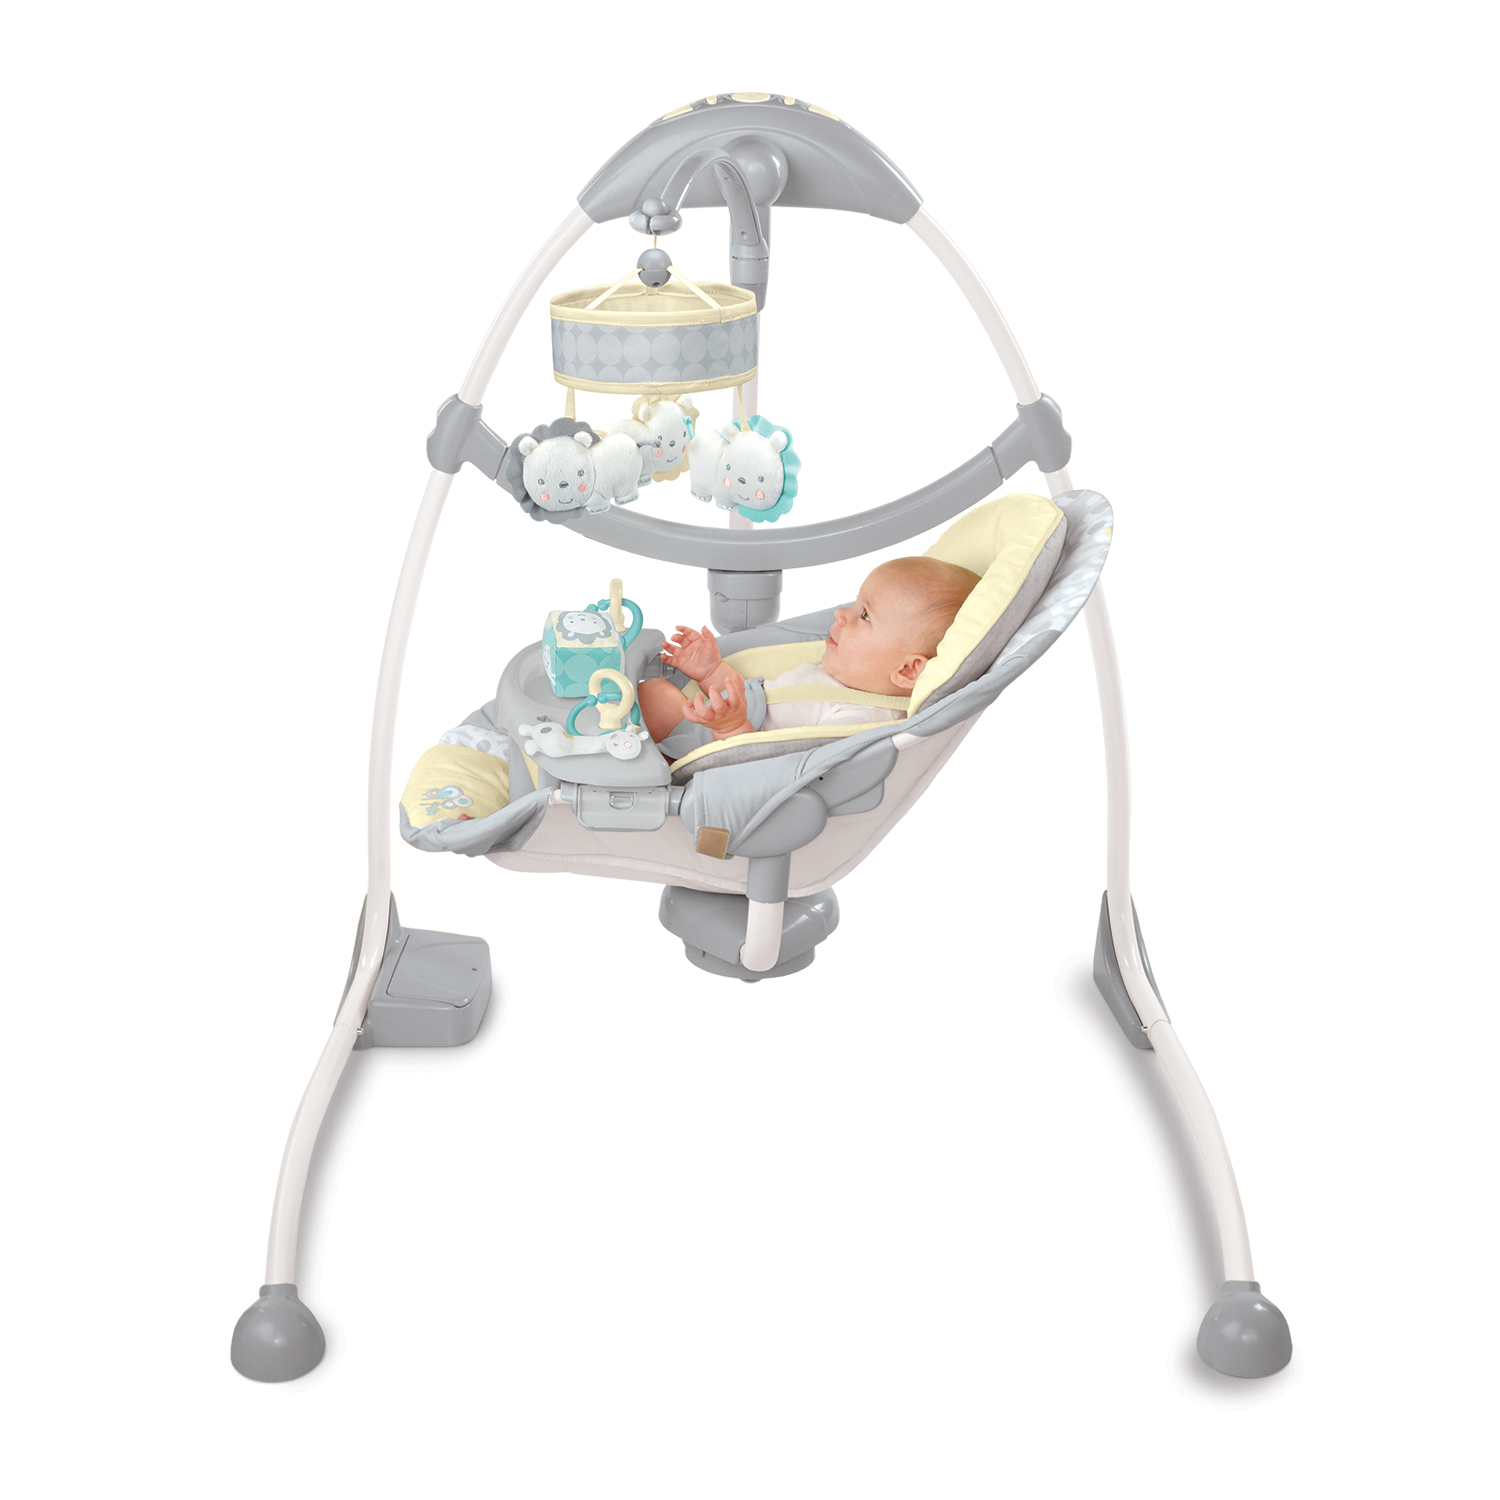 Bright Starts Ingenuity Cradle And Sway Swing Review